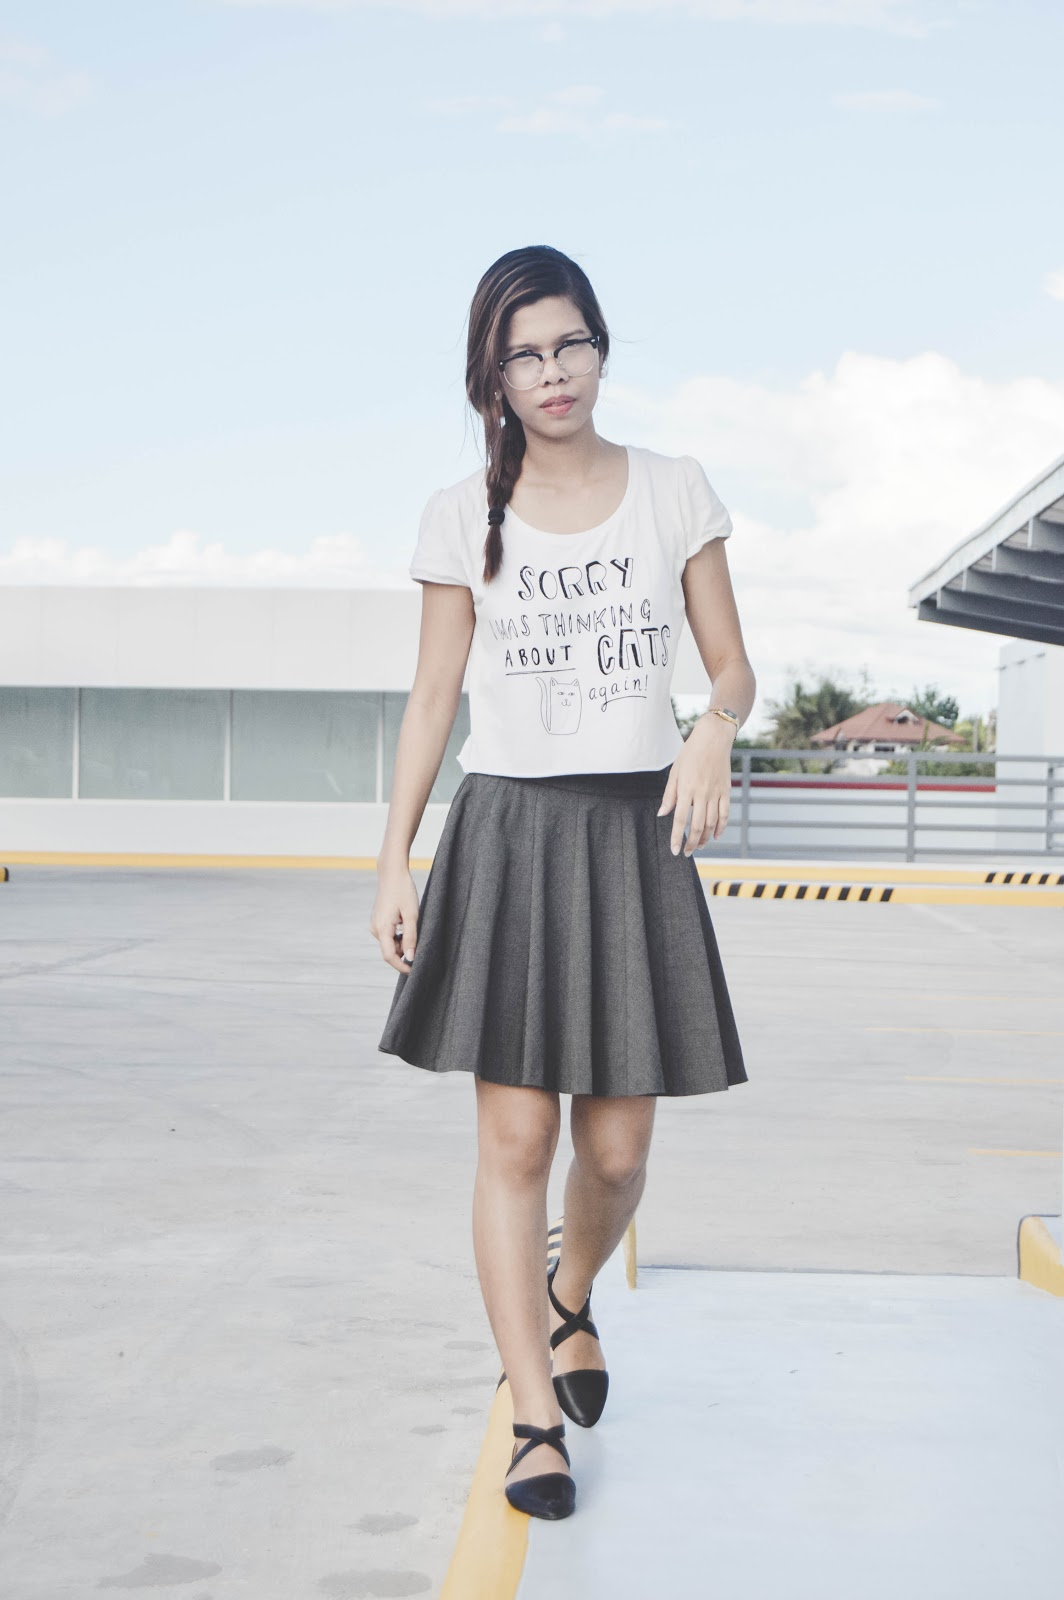 fashion blogger, style blogger, cebu blogger, cebu style blogger, blogger, filipina blogger, cebuana blogger, nested thoughts, katherine cutar, katherine anne cutar, katherineanika, katherine annika, ootd, ootd plipinas, filipina blogger, filipino blogger, skirts, ballet shoes, sunnies, metro sunnies, dainty look, girly look, cotton on, cat shirt, cropped top,